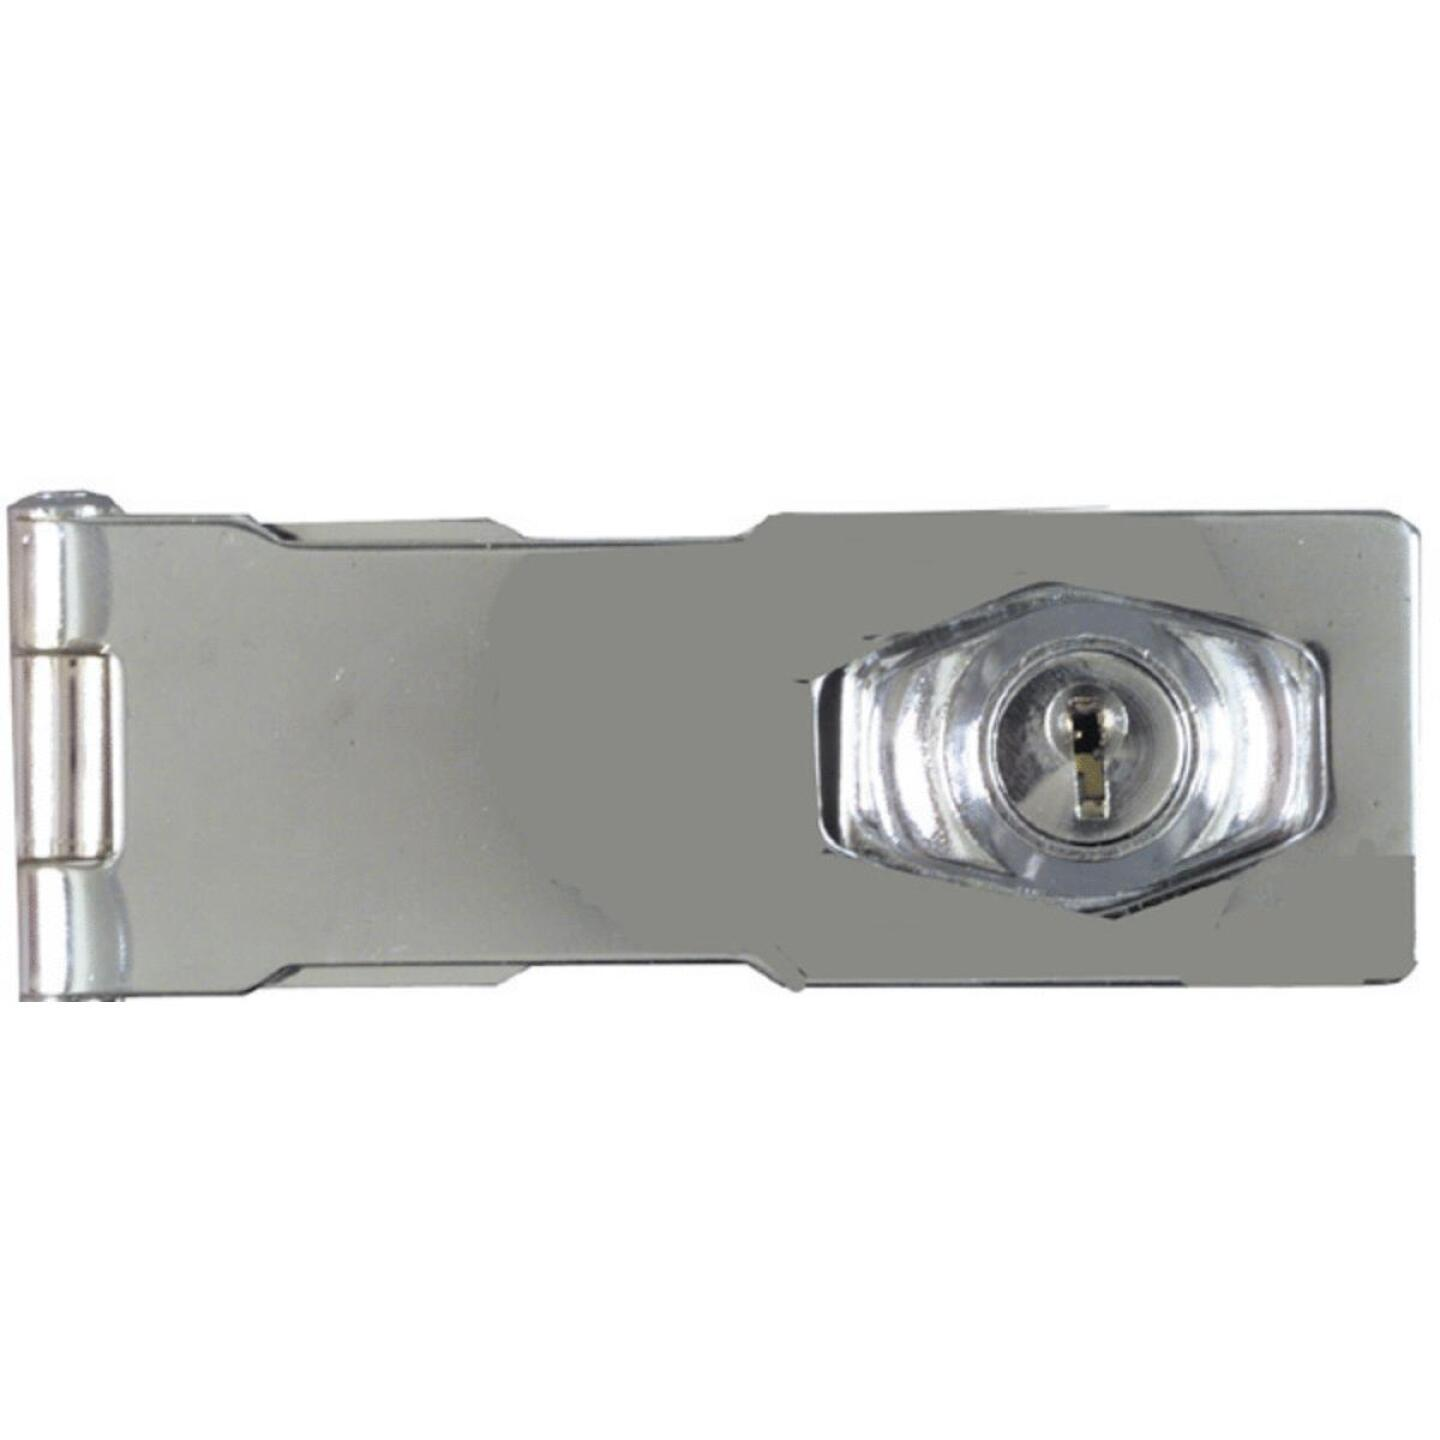 National 4-1/2 In. Keyed Different Hasp Lock Image 2